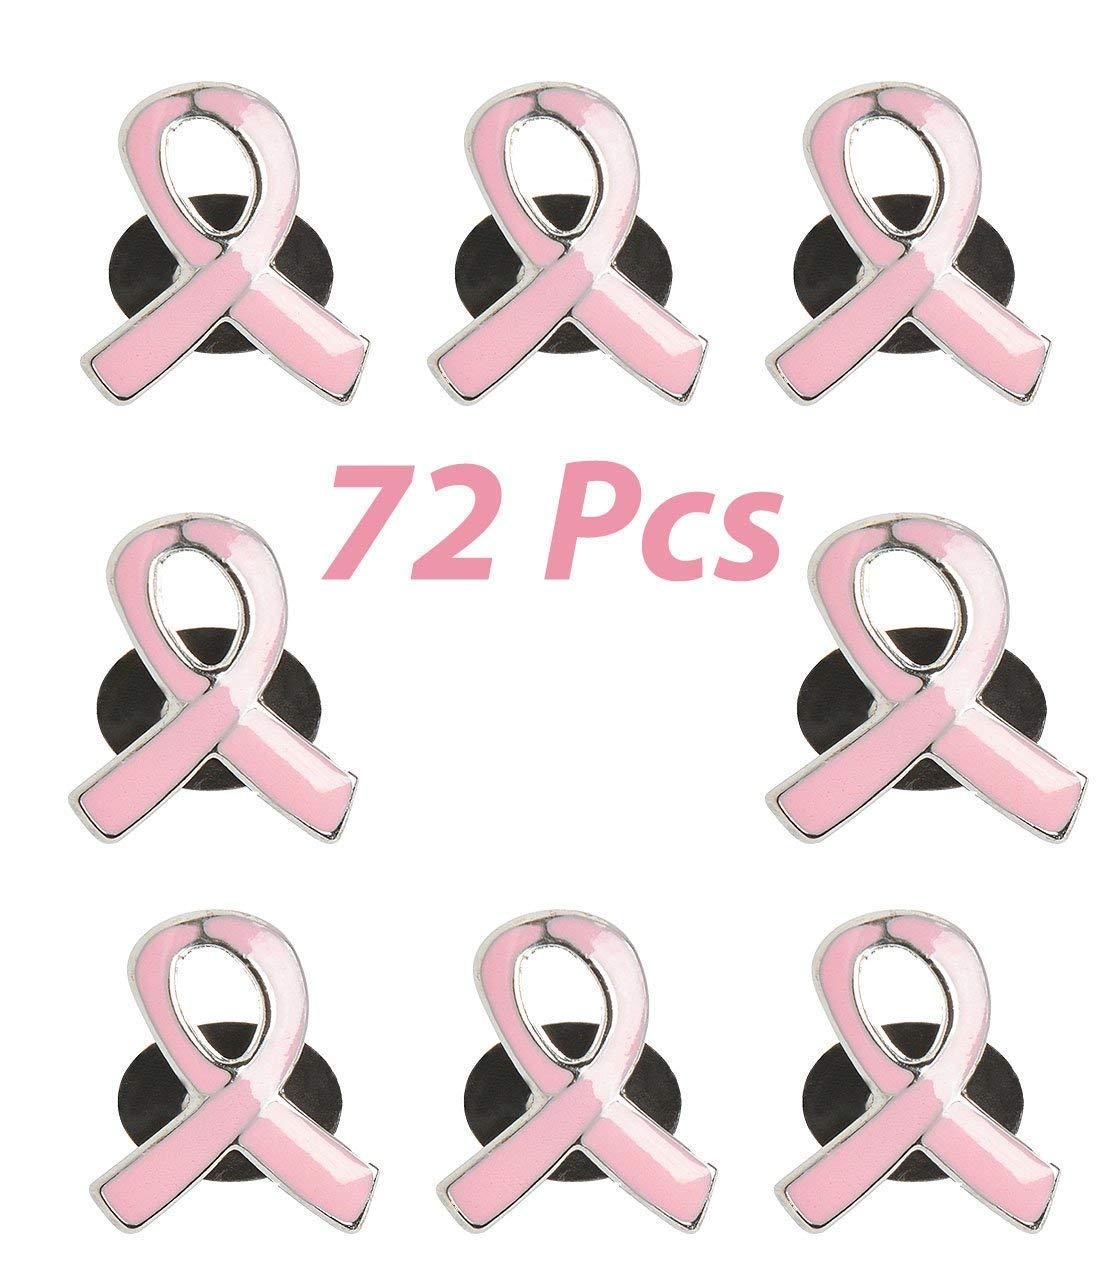 72 Pink Ribbon Pins Bulk, Breast Cancer Fundraising & Awareness Metal Lapel Pins, by 4E's Novelty by 4E's Novelty